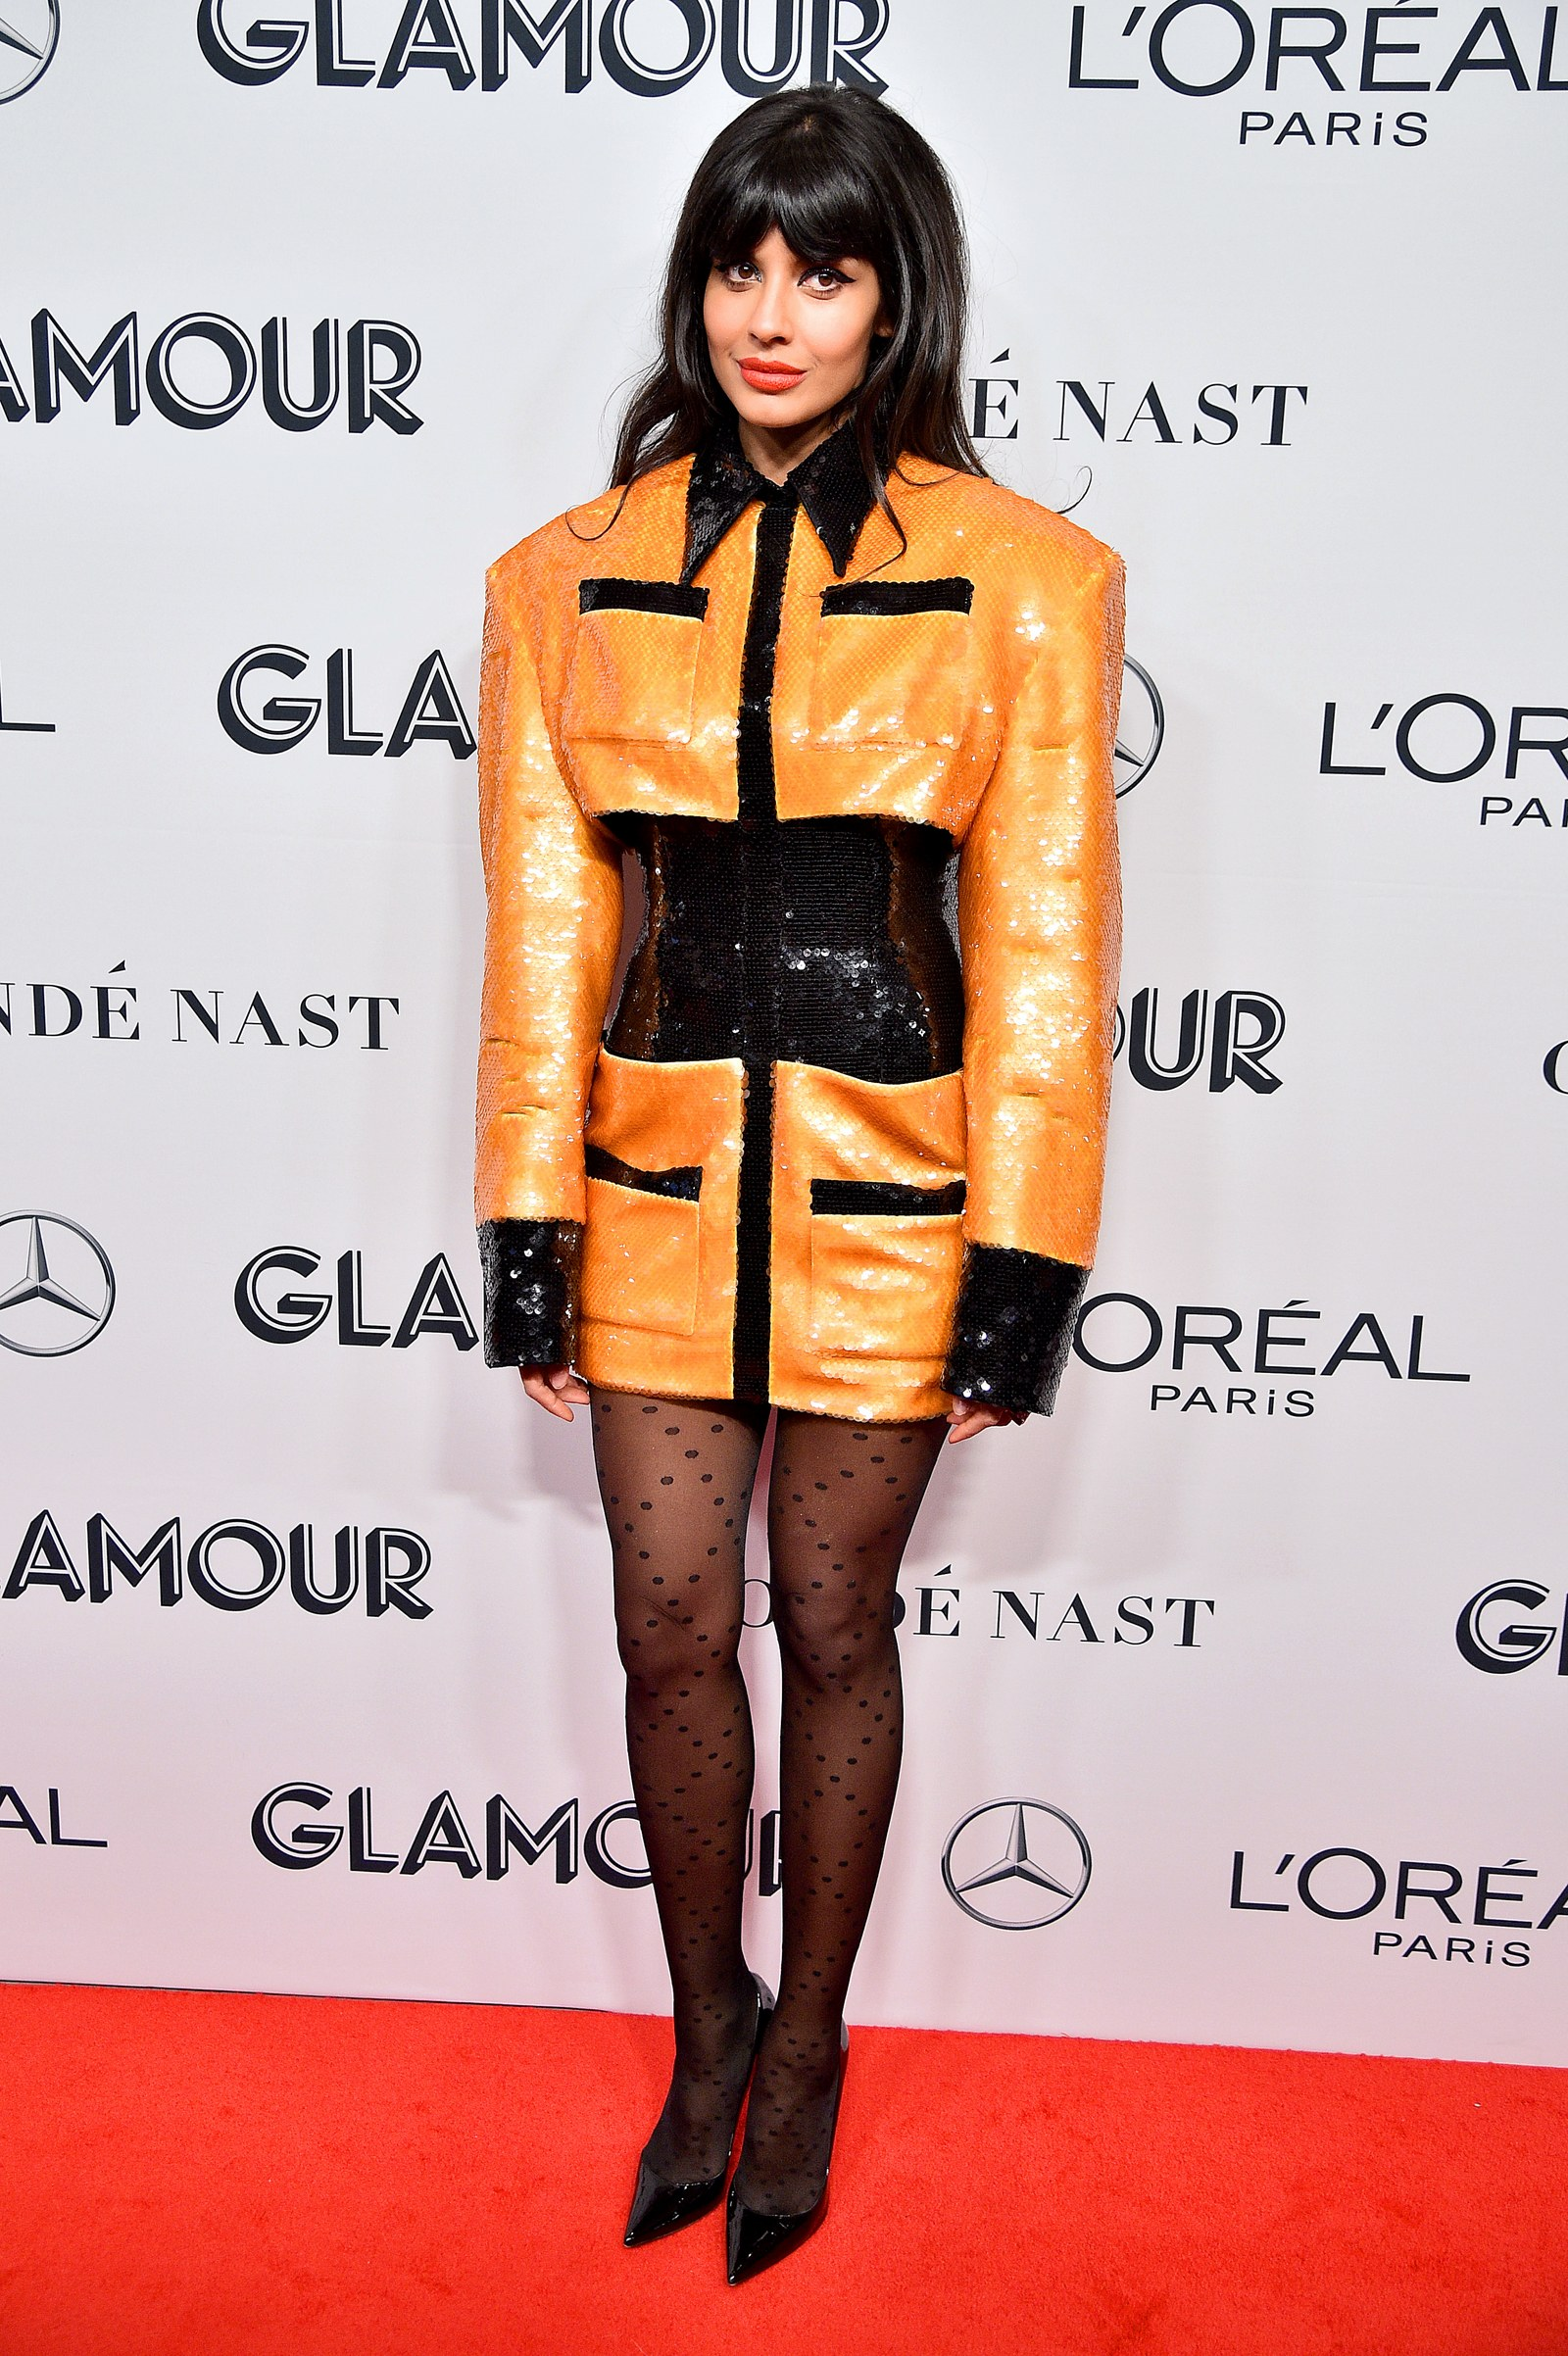 jameela-jamil-in-balmain-2019-glamour-women-of-the-year-awards